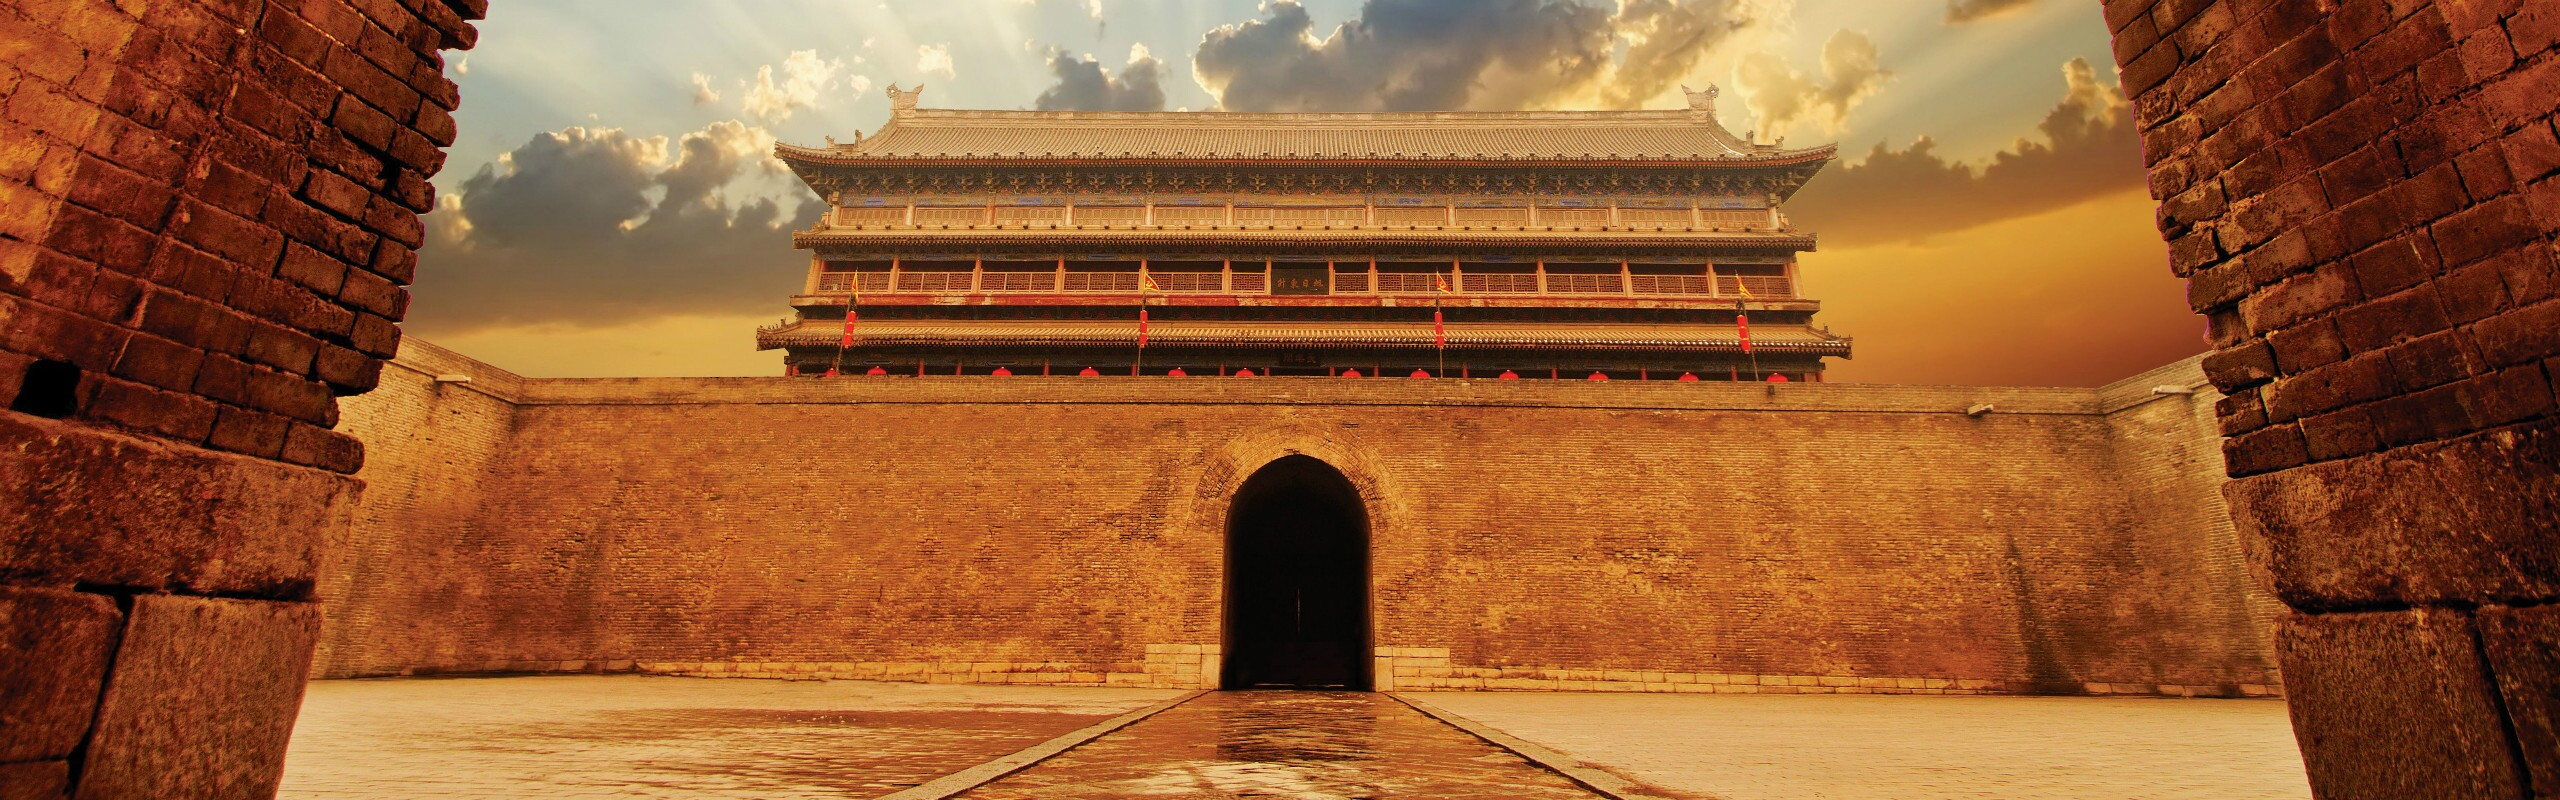 One-Day Xi'an Highlights Private Tour